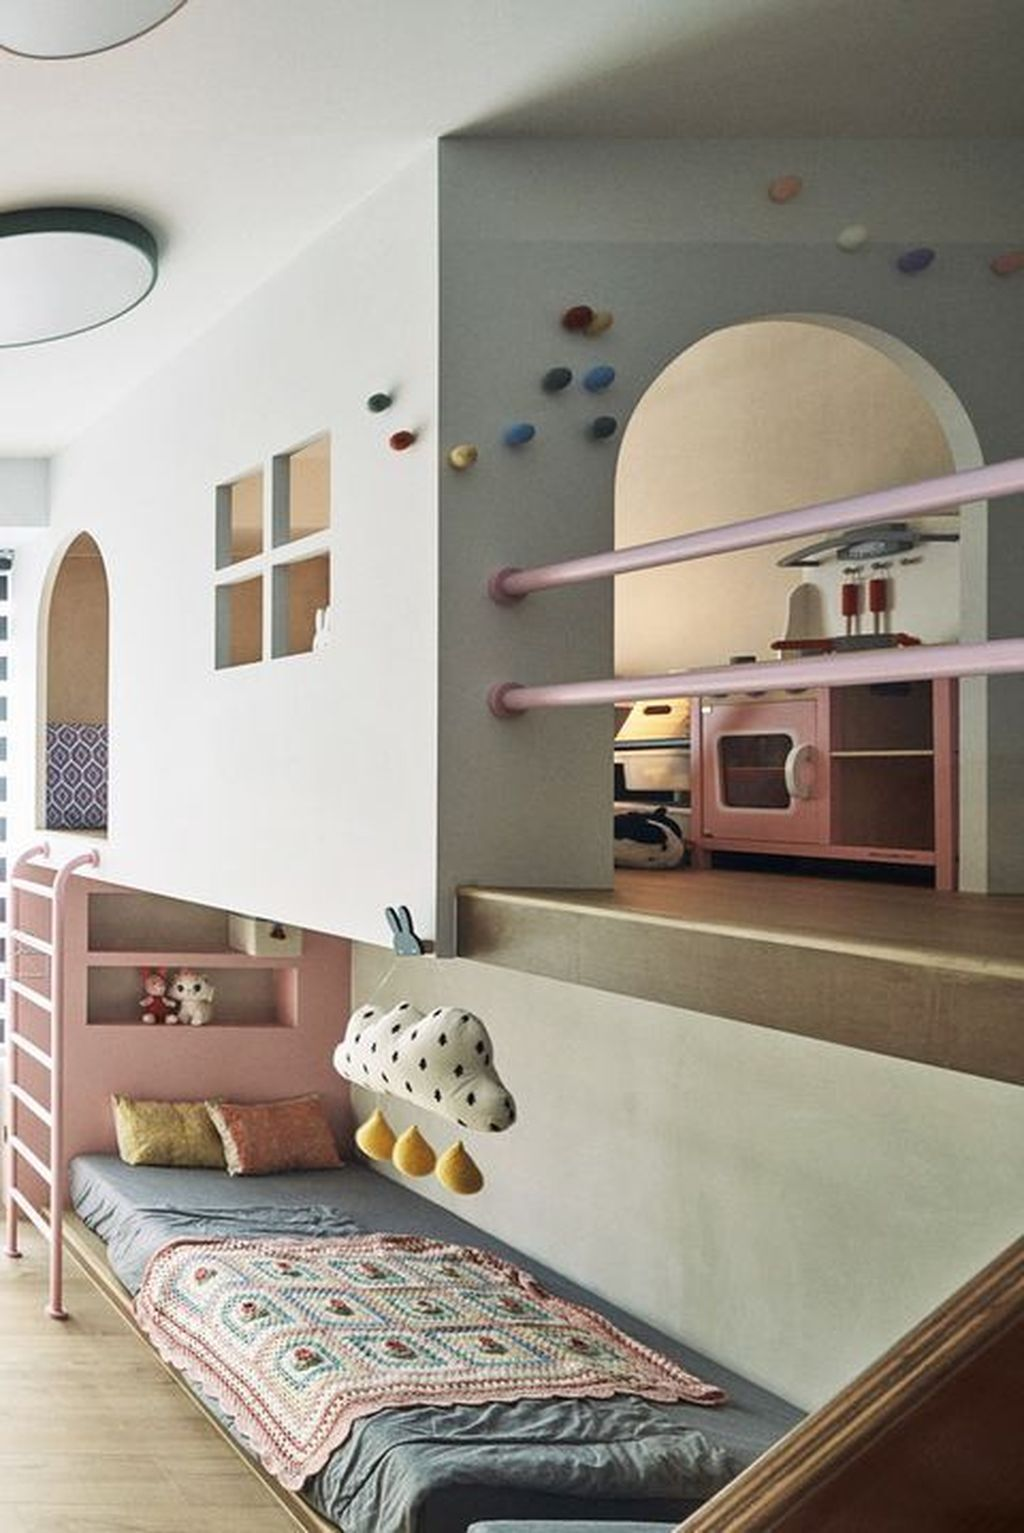 34 Charming Kids Bedroom Design Ideas For Dream Homes In 2020